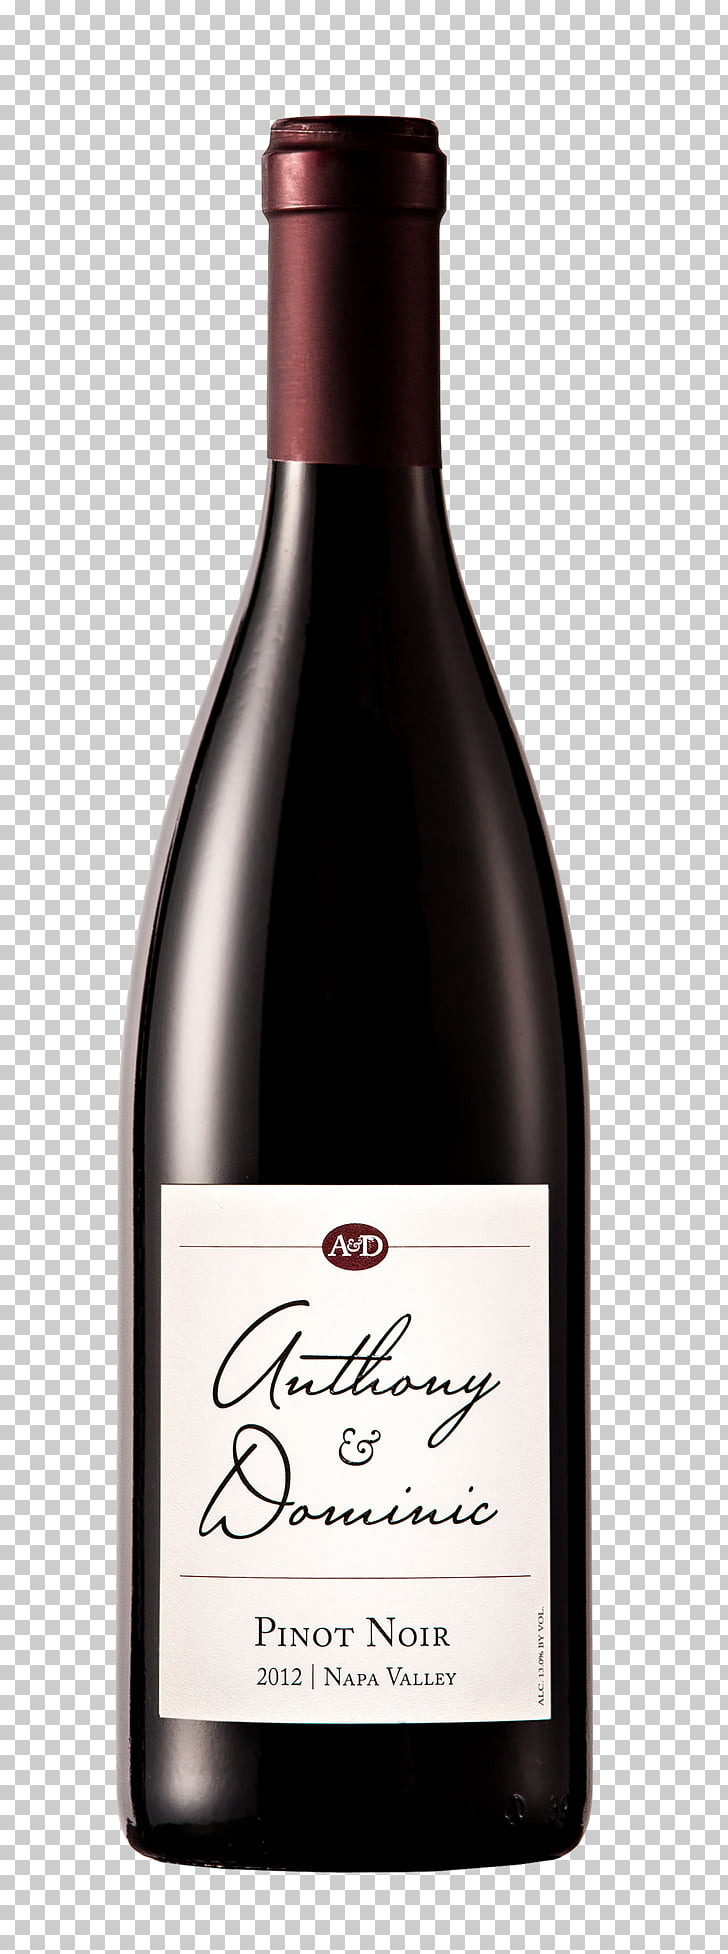 hight resolution of red wine martin ray winery pinot noir shiraz pinot noir png clipart